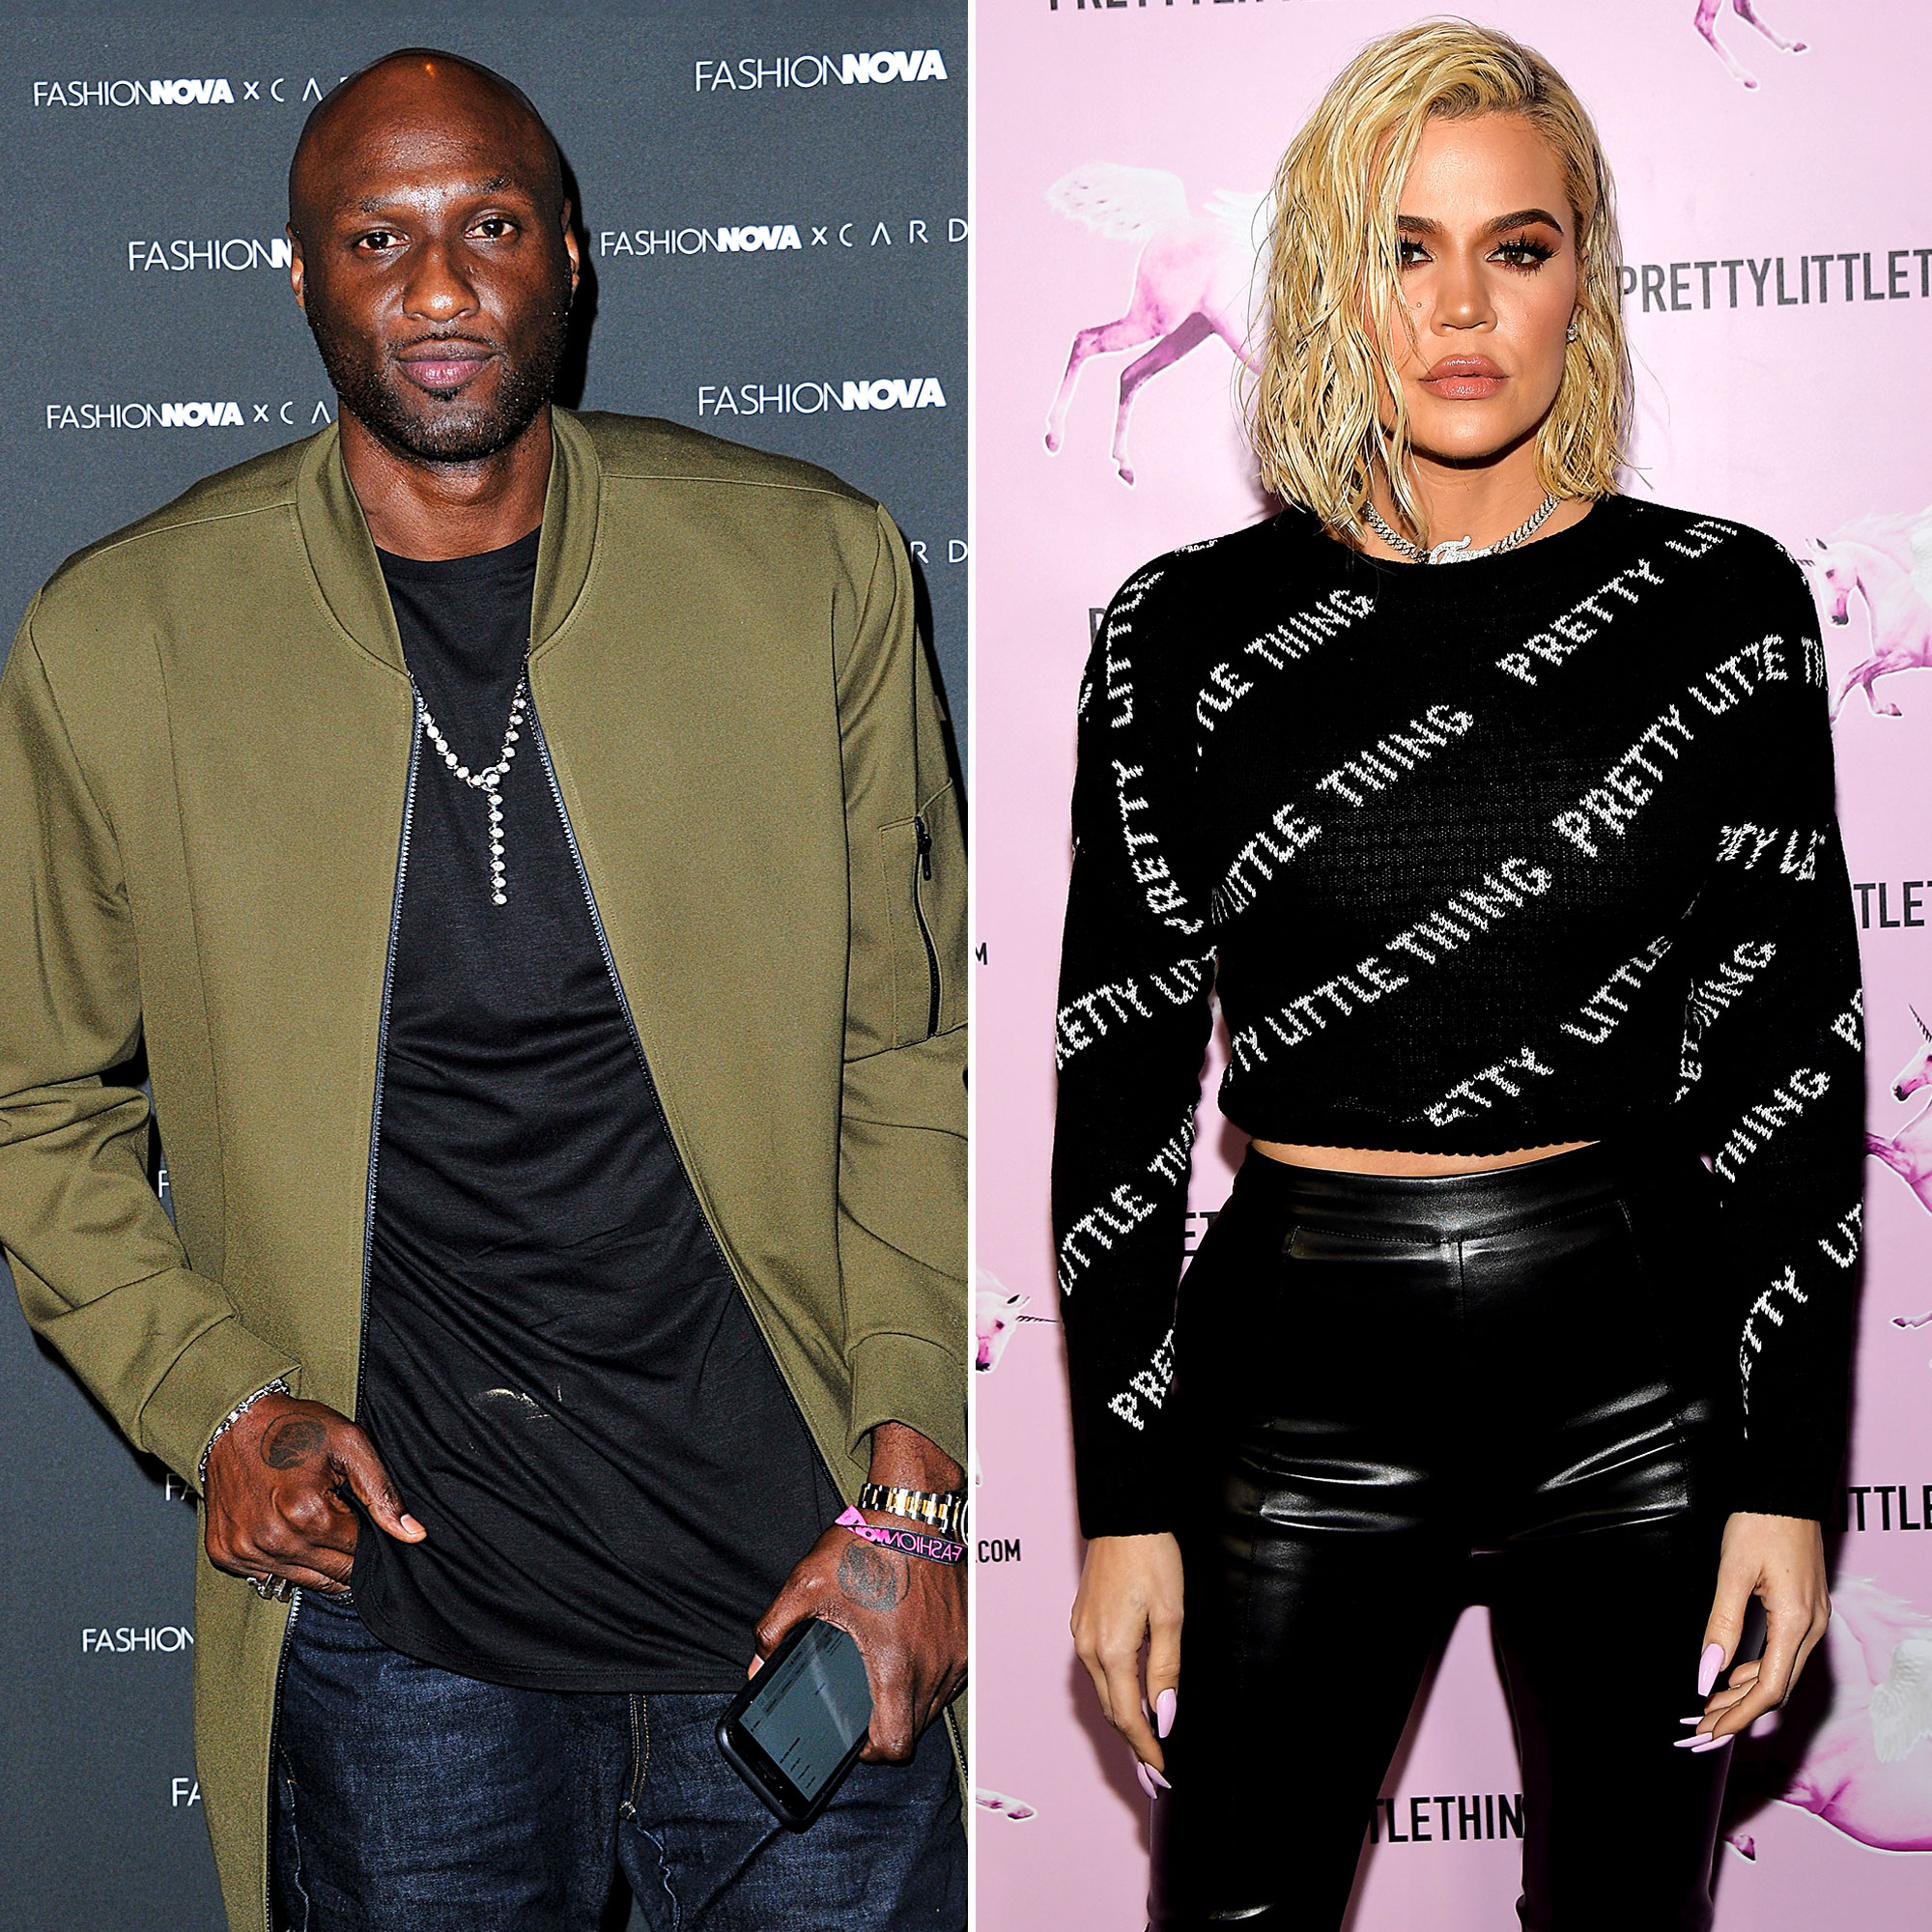 Lamar Odom Confesses He Threatened Khloe Kardashian During Marriage